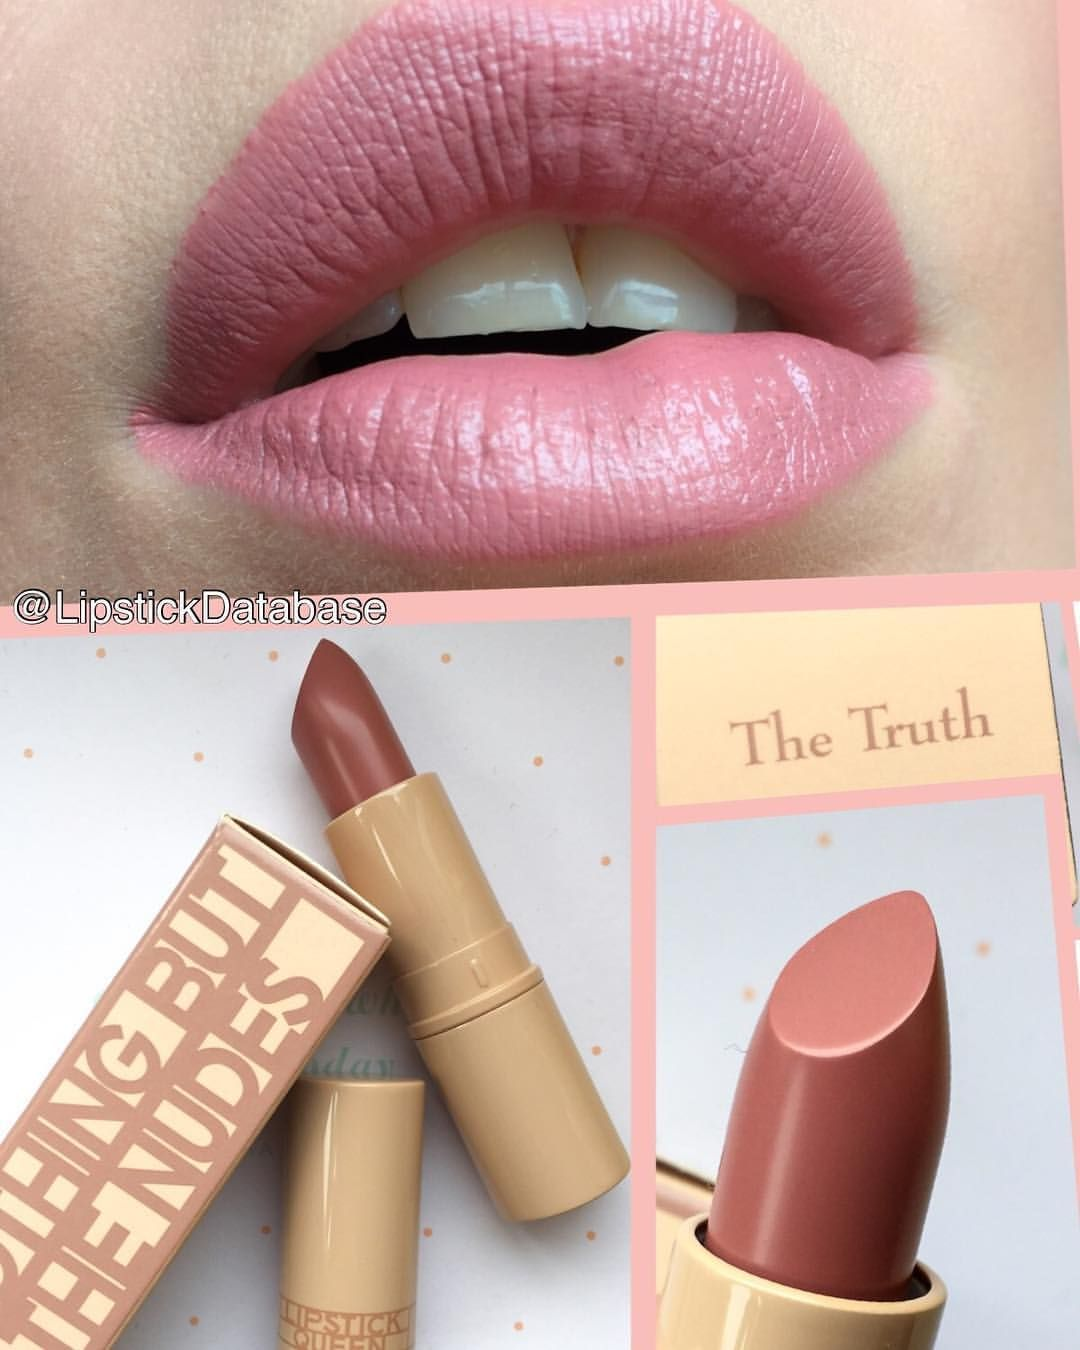 Lipstick queen nothing but the nudes in naked truth prelovedbekas dalam kondisi sangat bagus